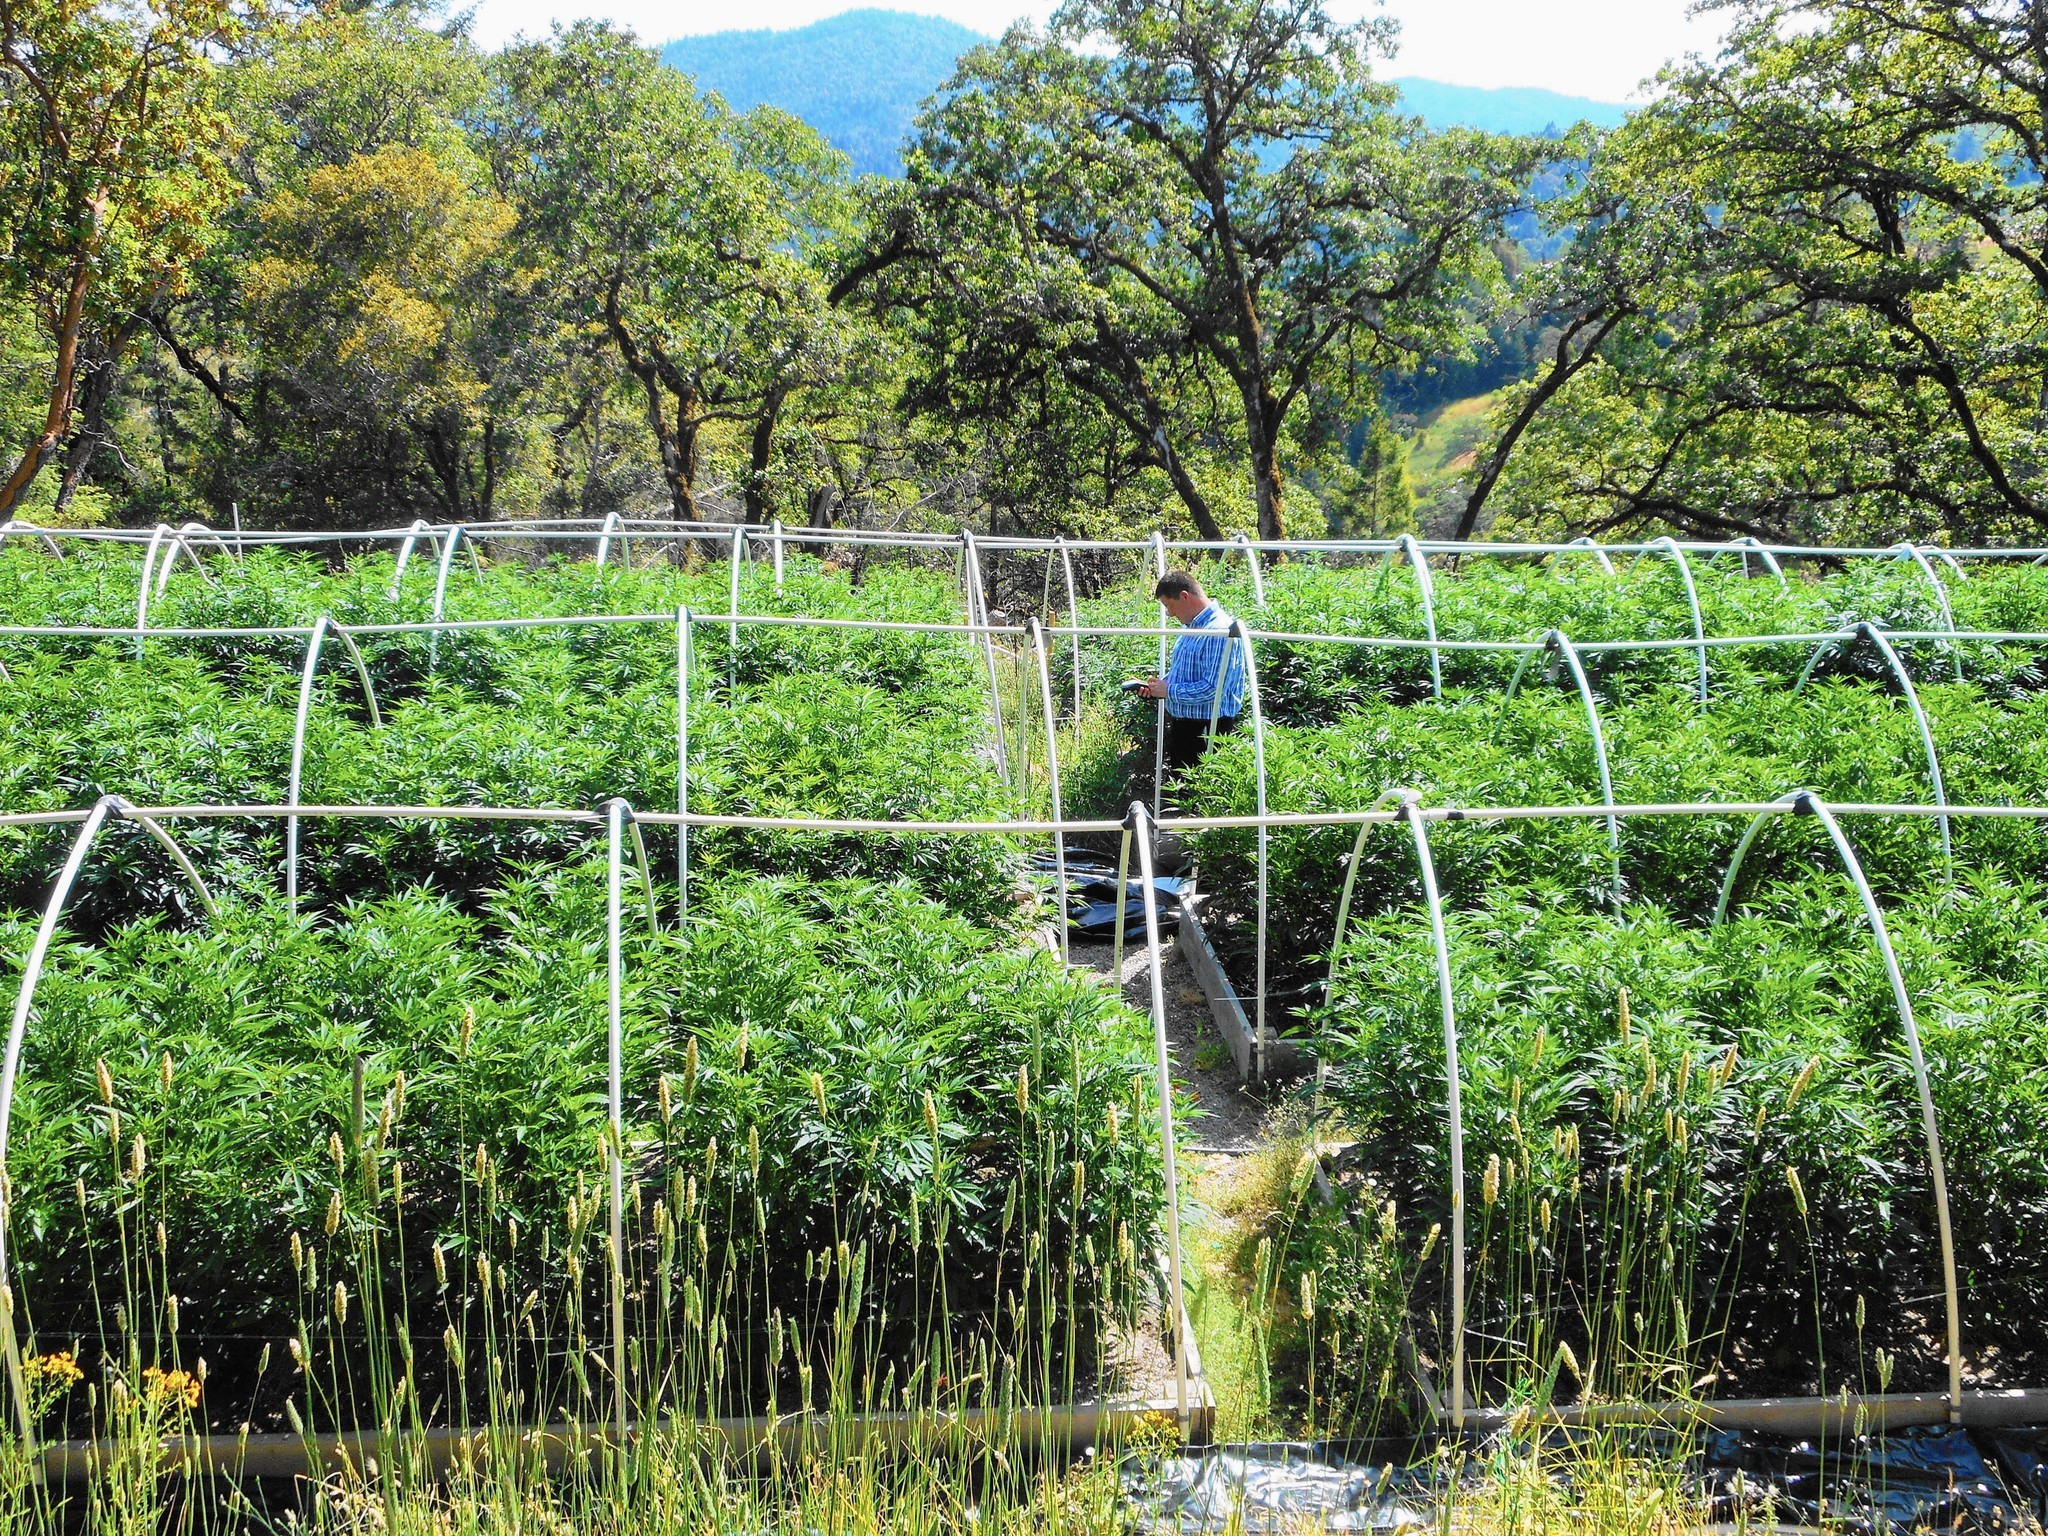 Civil engineer Praj White assesses a site in Humboldt County's Eel River watershed that is home to a marijuana farm. (Humboldt County)